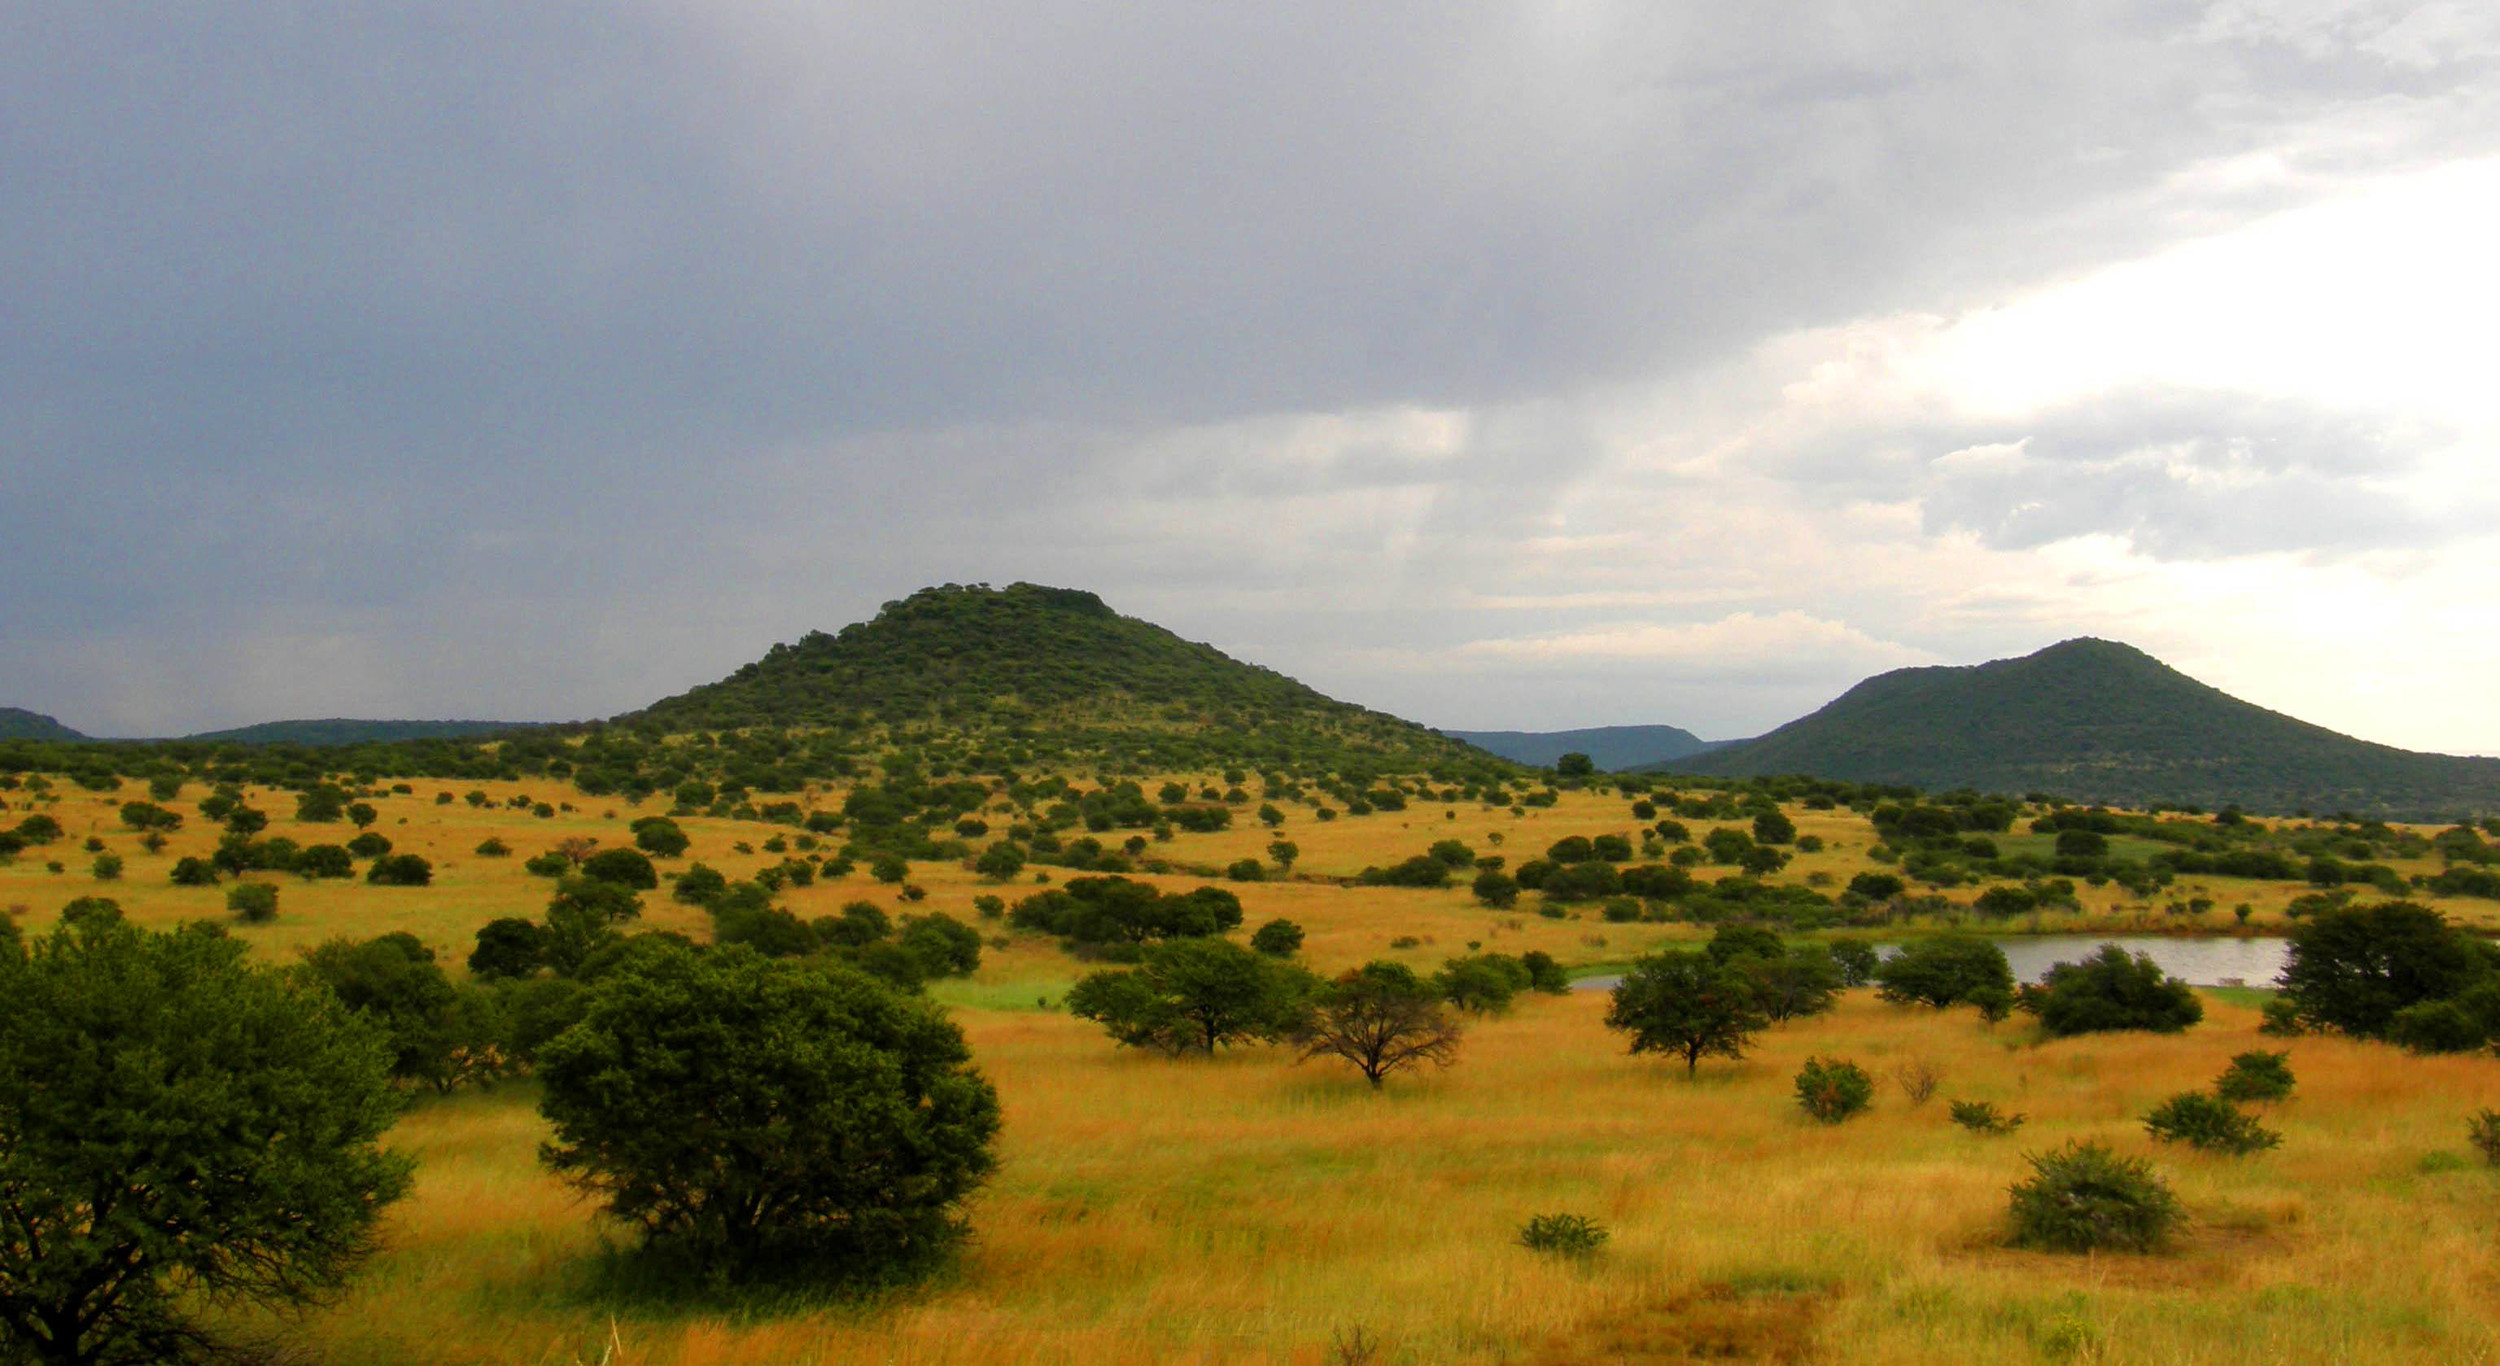 The cradle of humankind: the plains of Africa. Image © Gossipguy; retrieved from  Wikimedia